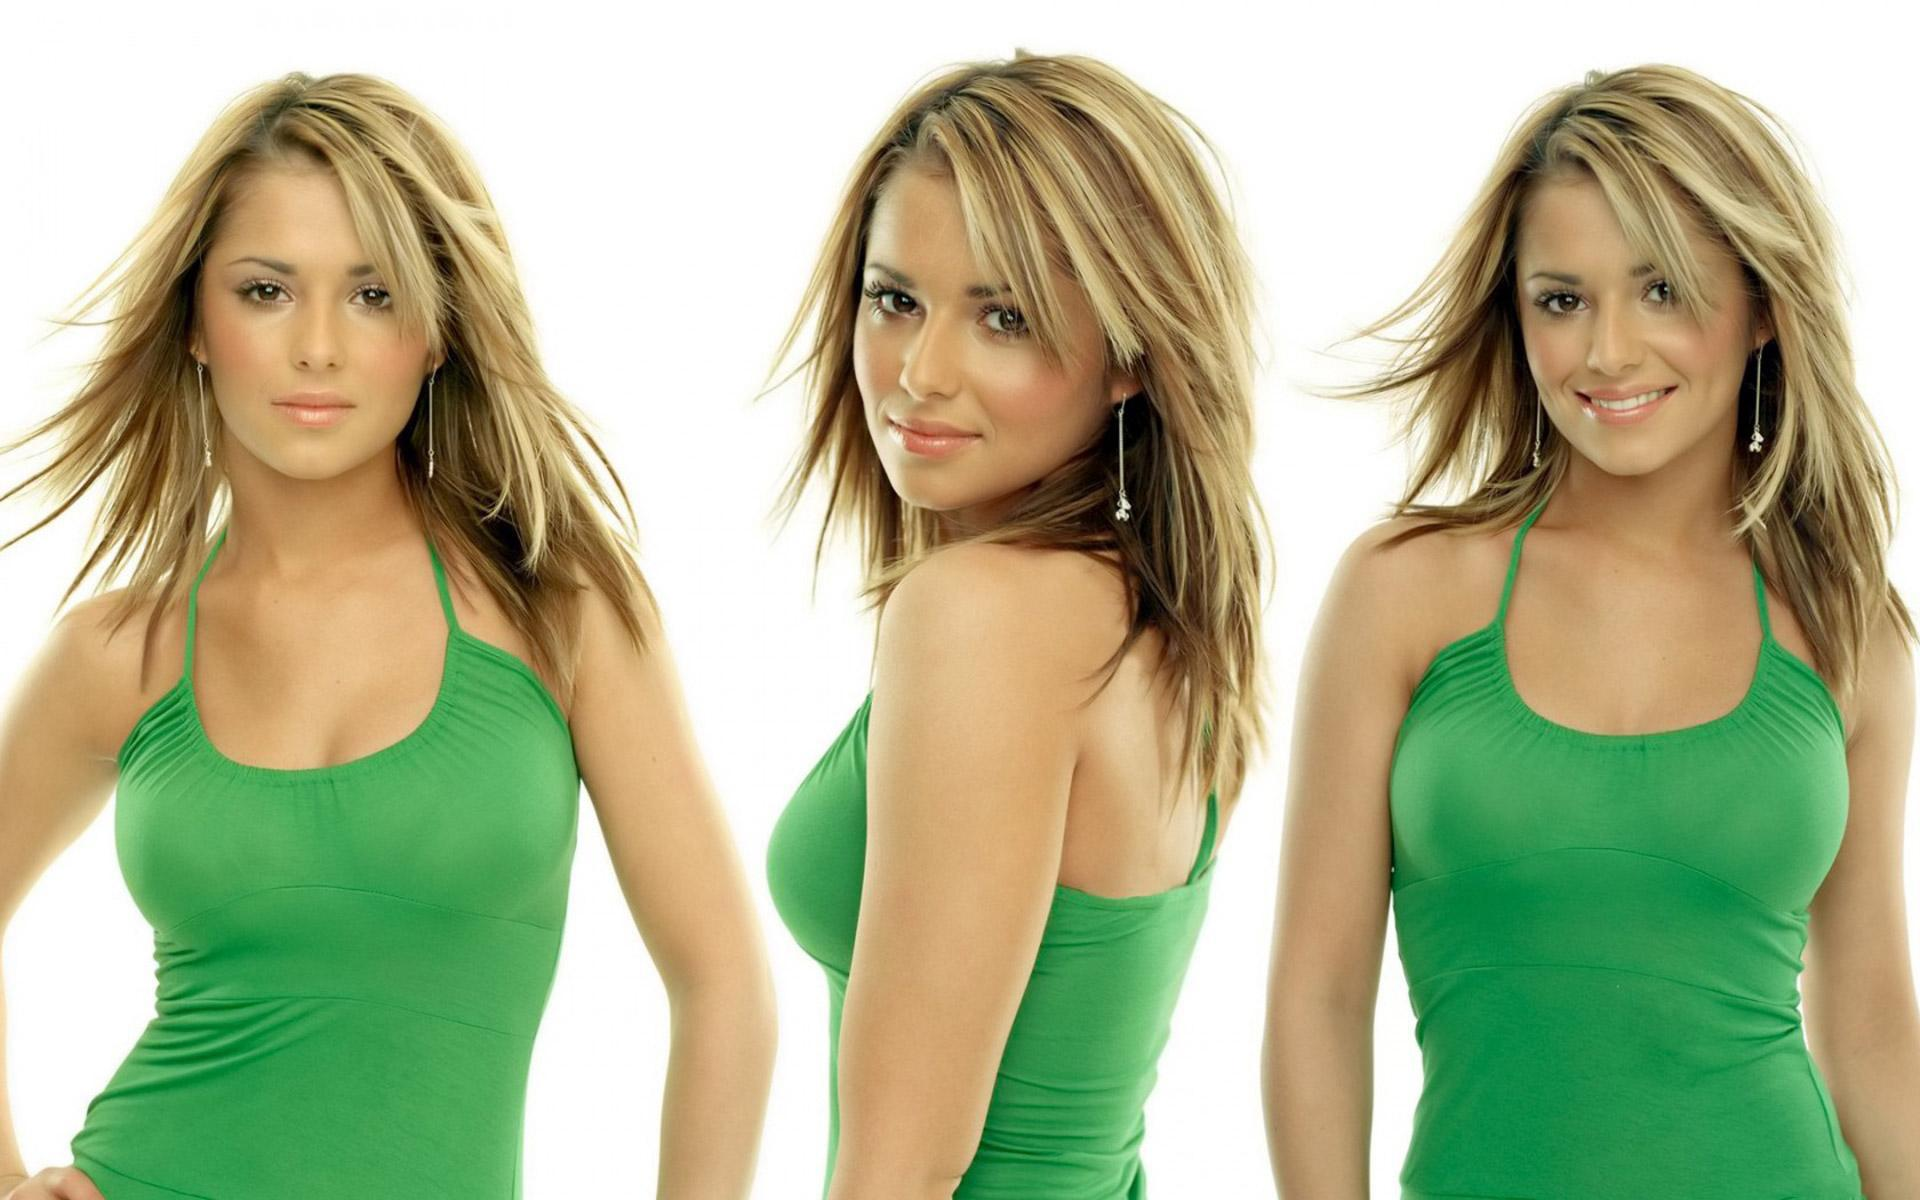 Girls Aloud wallpaper (24 images) pictures download